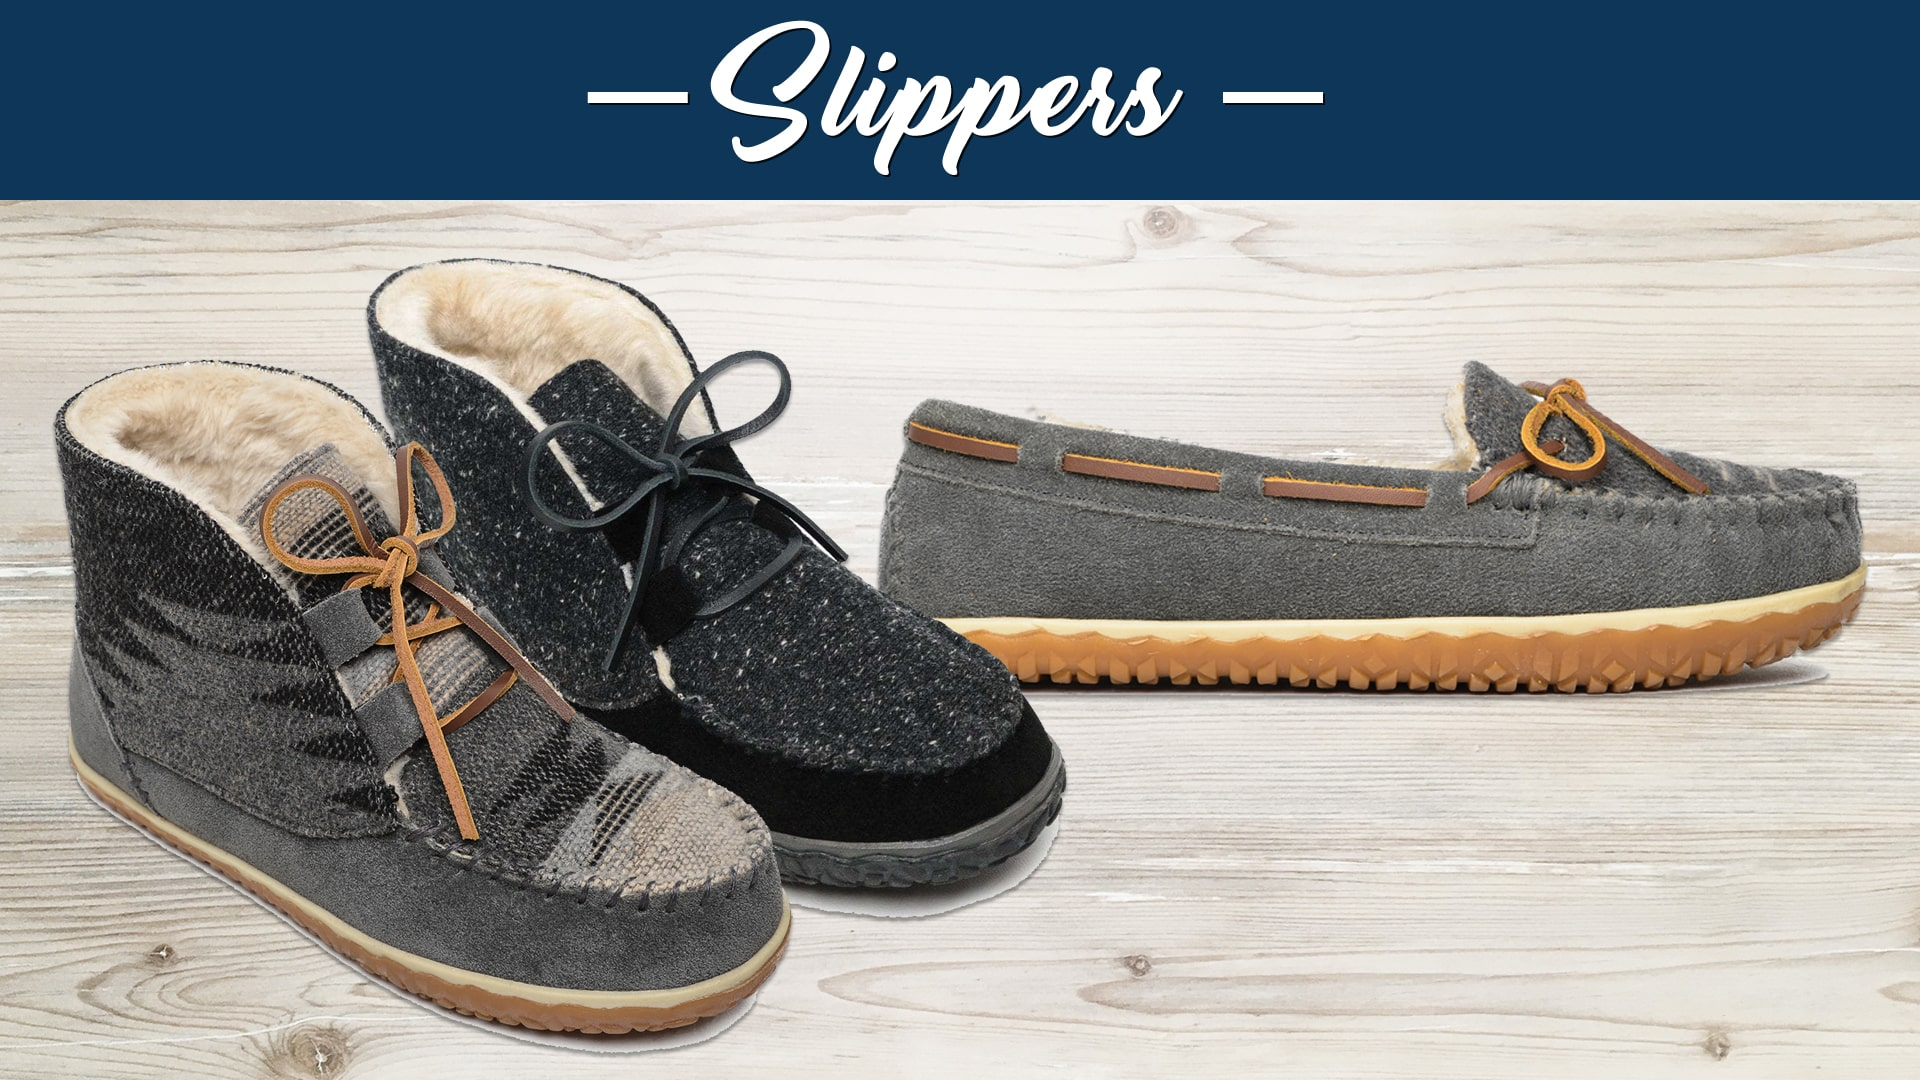 New Ladies Fall Styles Slippers